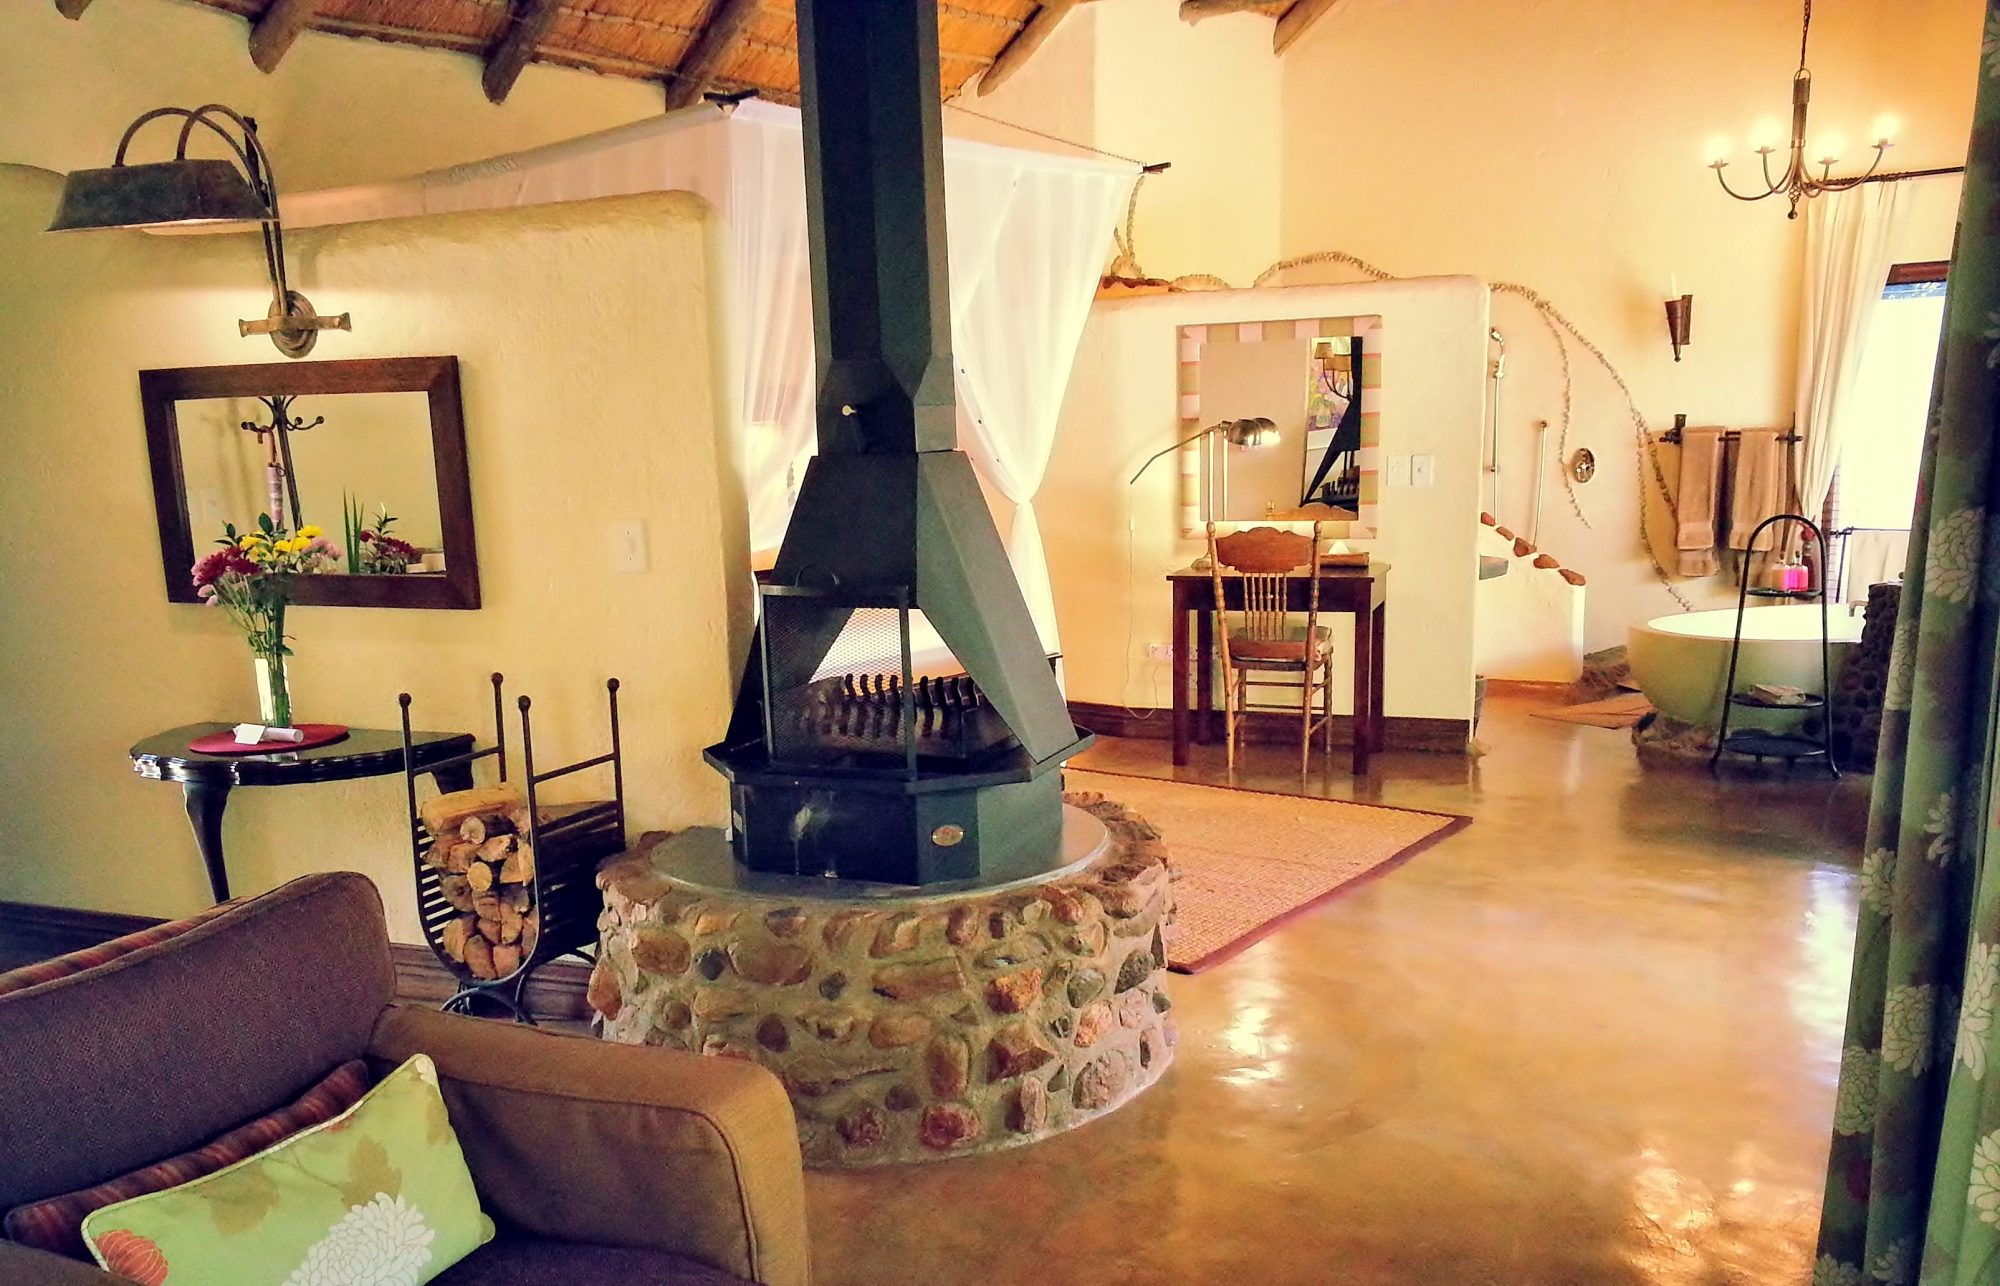 Tanamera Lodge, Hazyview, Mpumalanga (1)